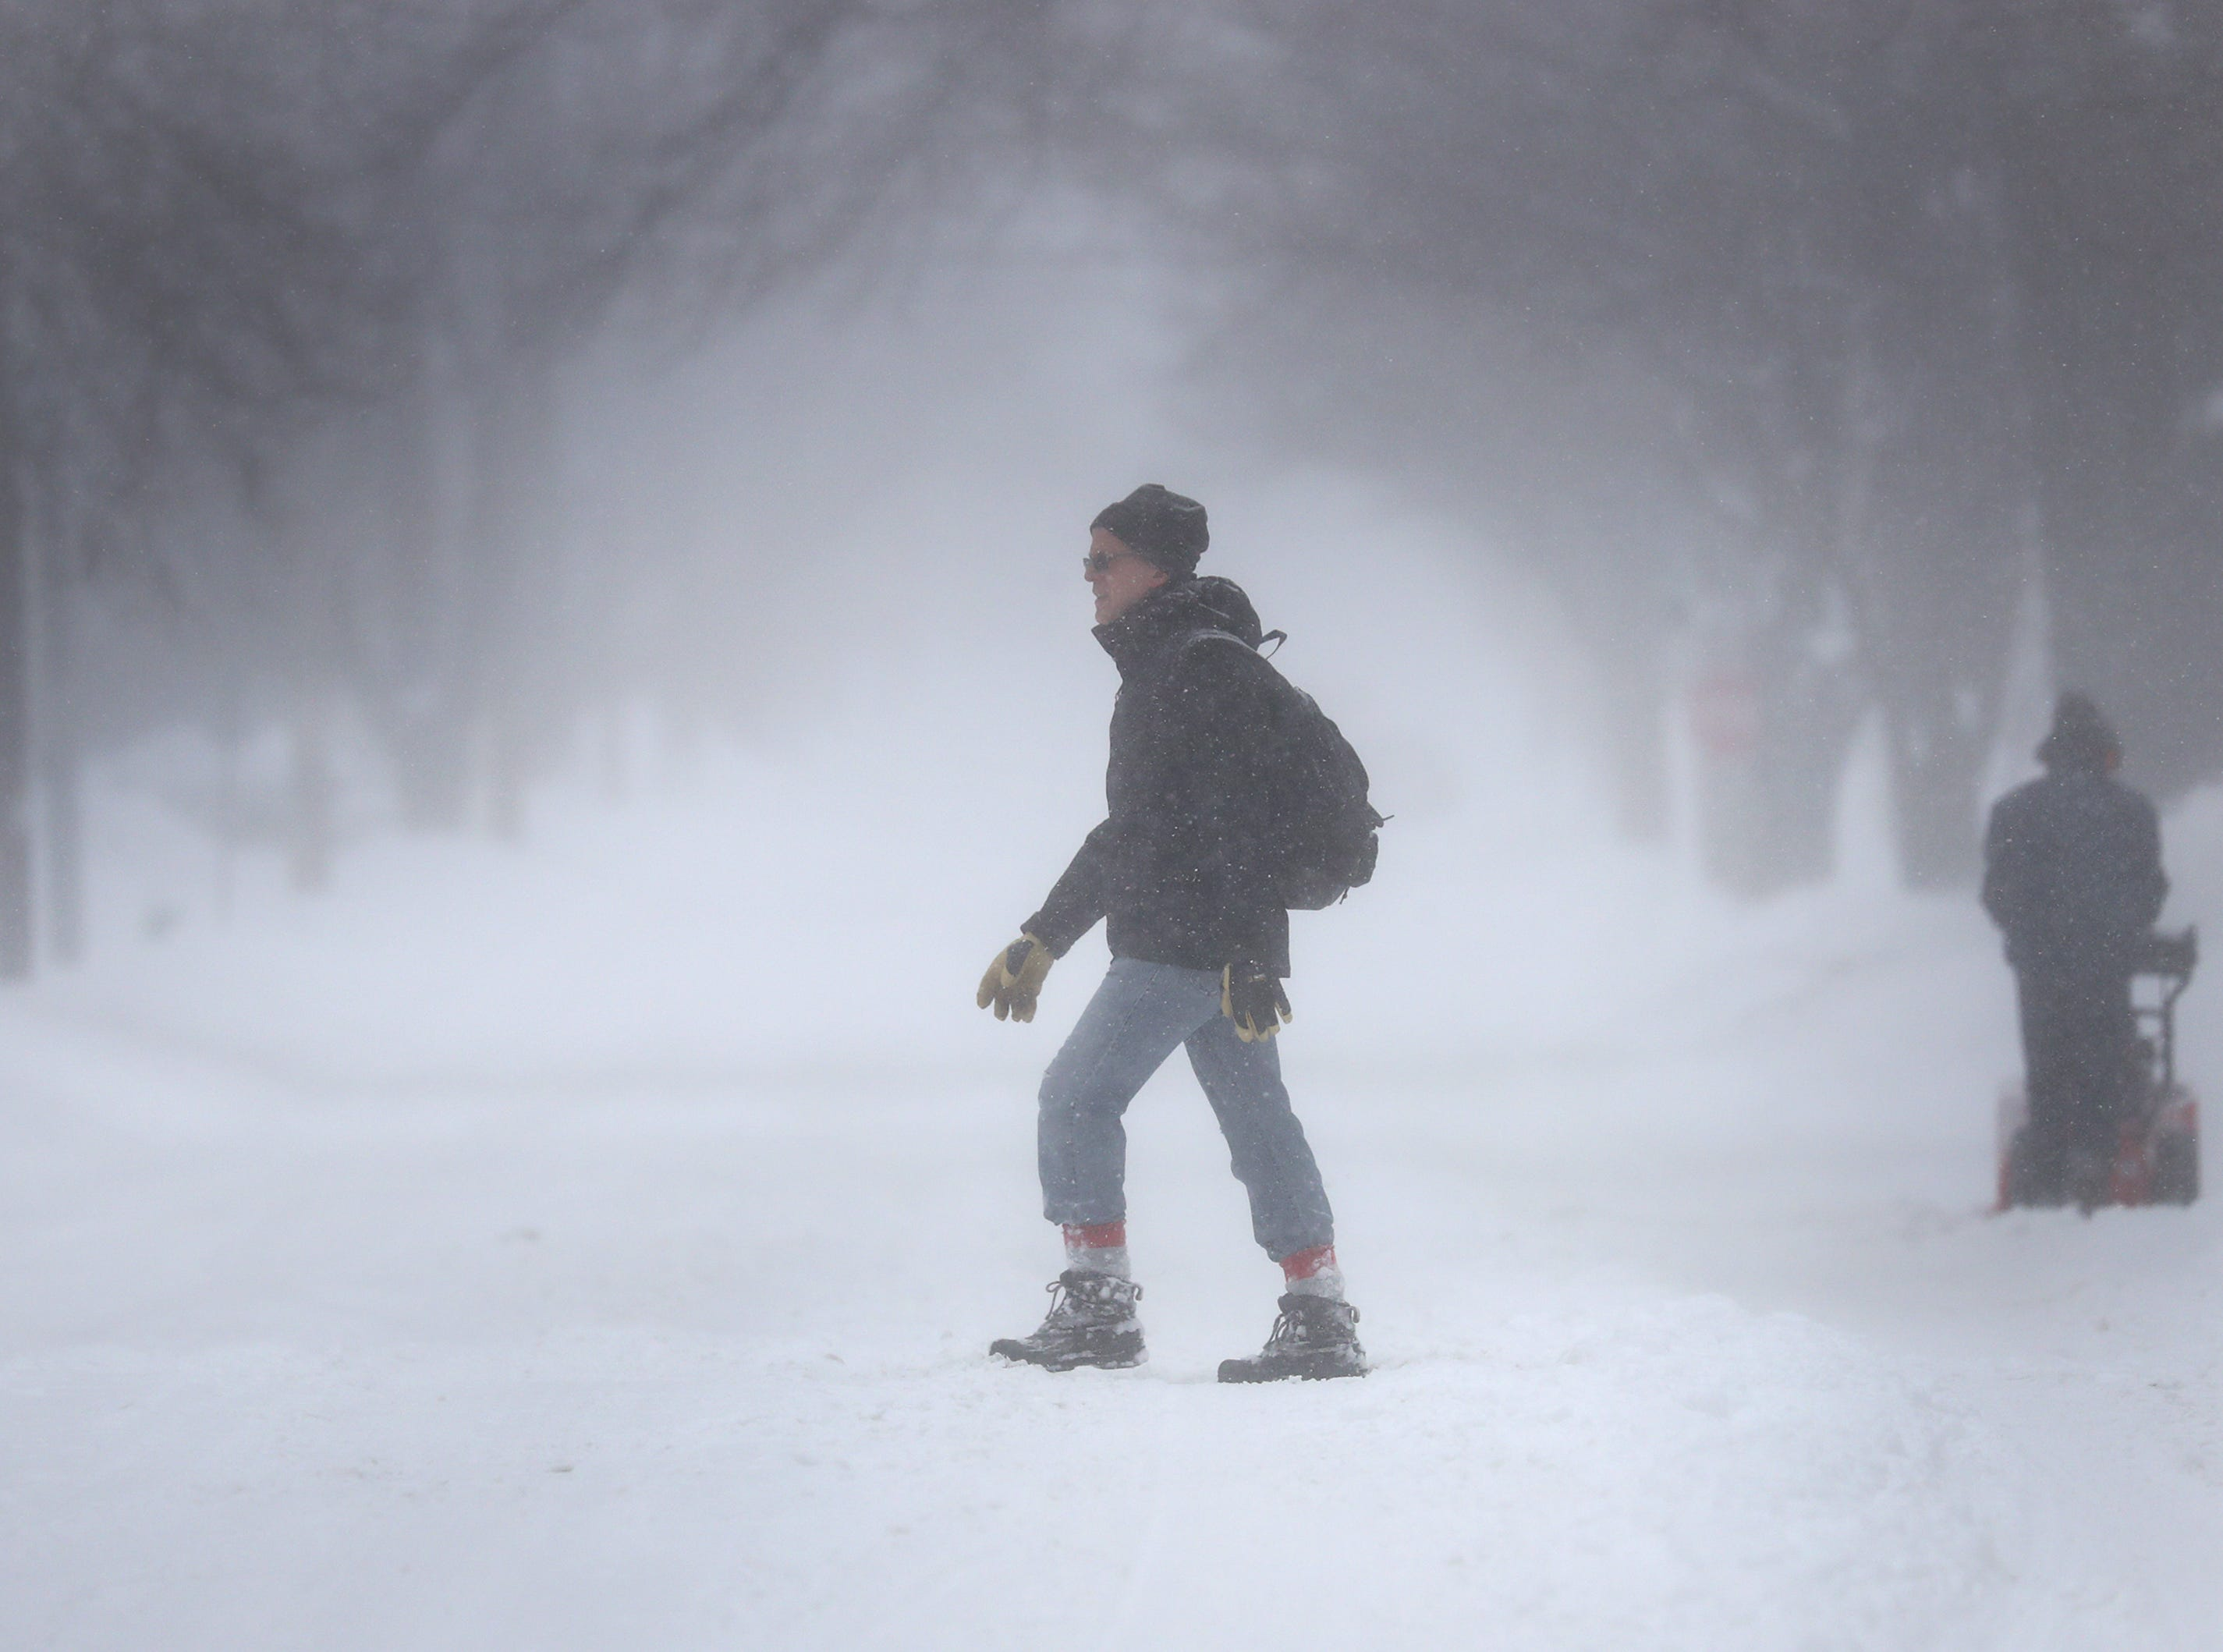 A pedestrian navigates a snow-covered street on Tuesday, Feb. 12, 2019, in Appleton, Wis. The latest snow storm to move through the state dropped several inches of snow overnight, 6 to 12 inches are expected by Tuesday evening.